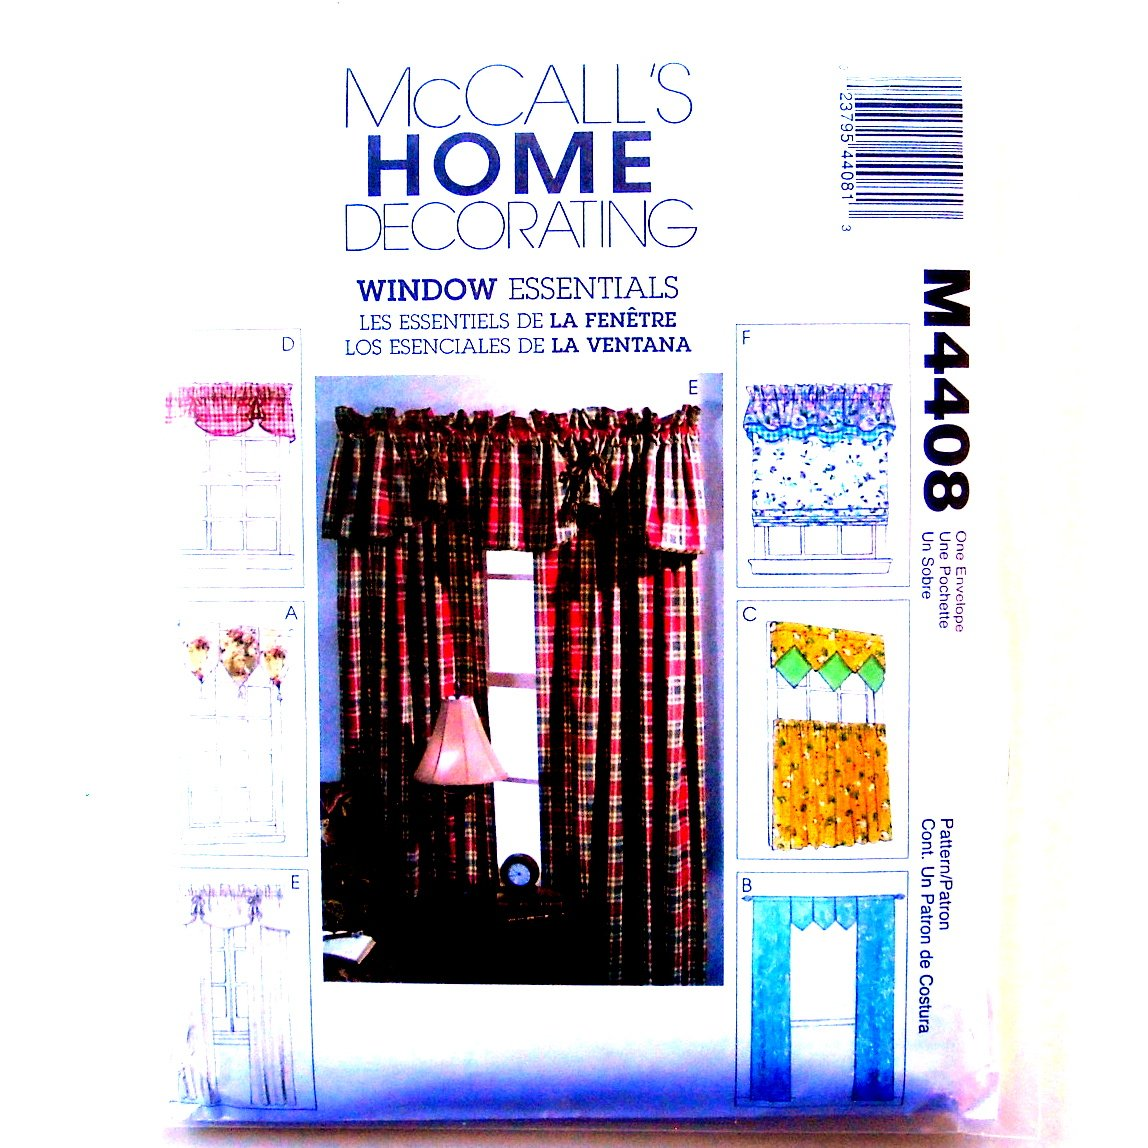 Window Valances Curtain Panels Home Decorating McCalls Sewing Pattern M4408